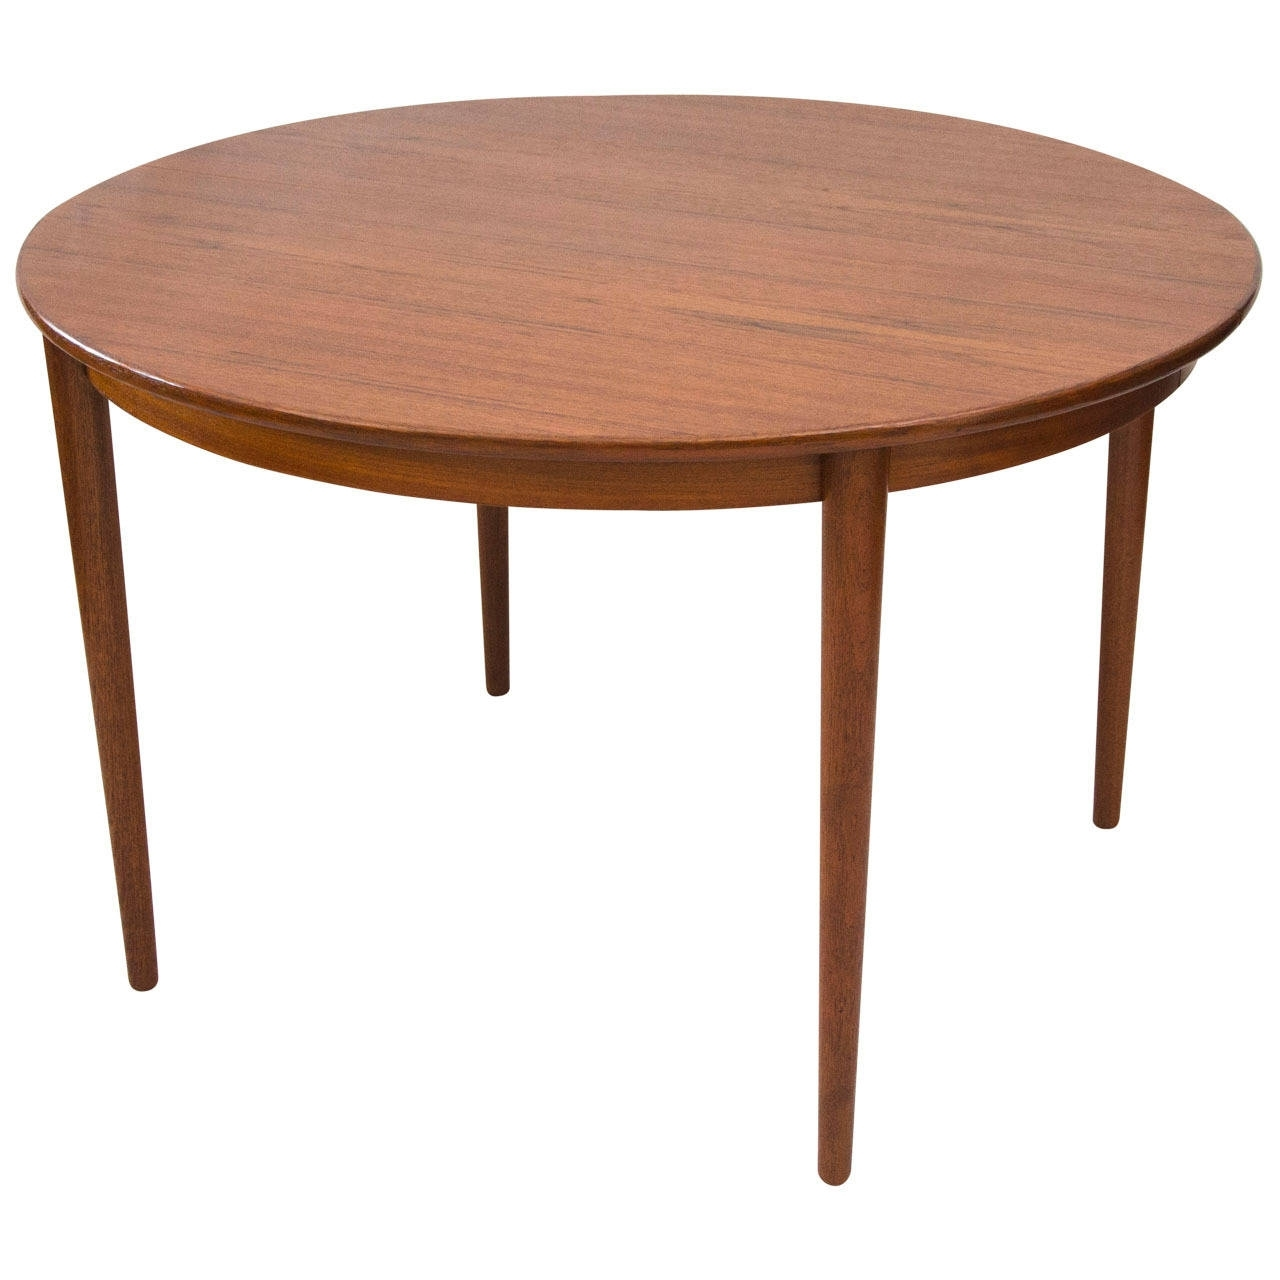 Danish Round Teak Dining Table With Two Leavesmoreddi At 1Stdibs Regarding Most Popular Round Teak Dining Tables (View 3 of 25)